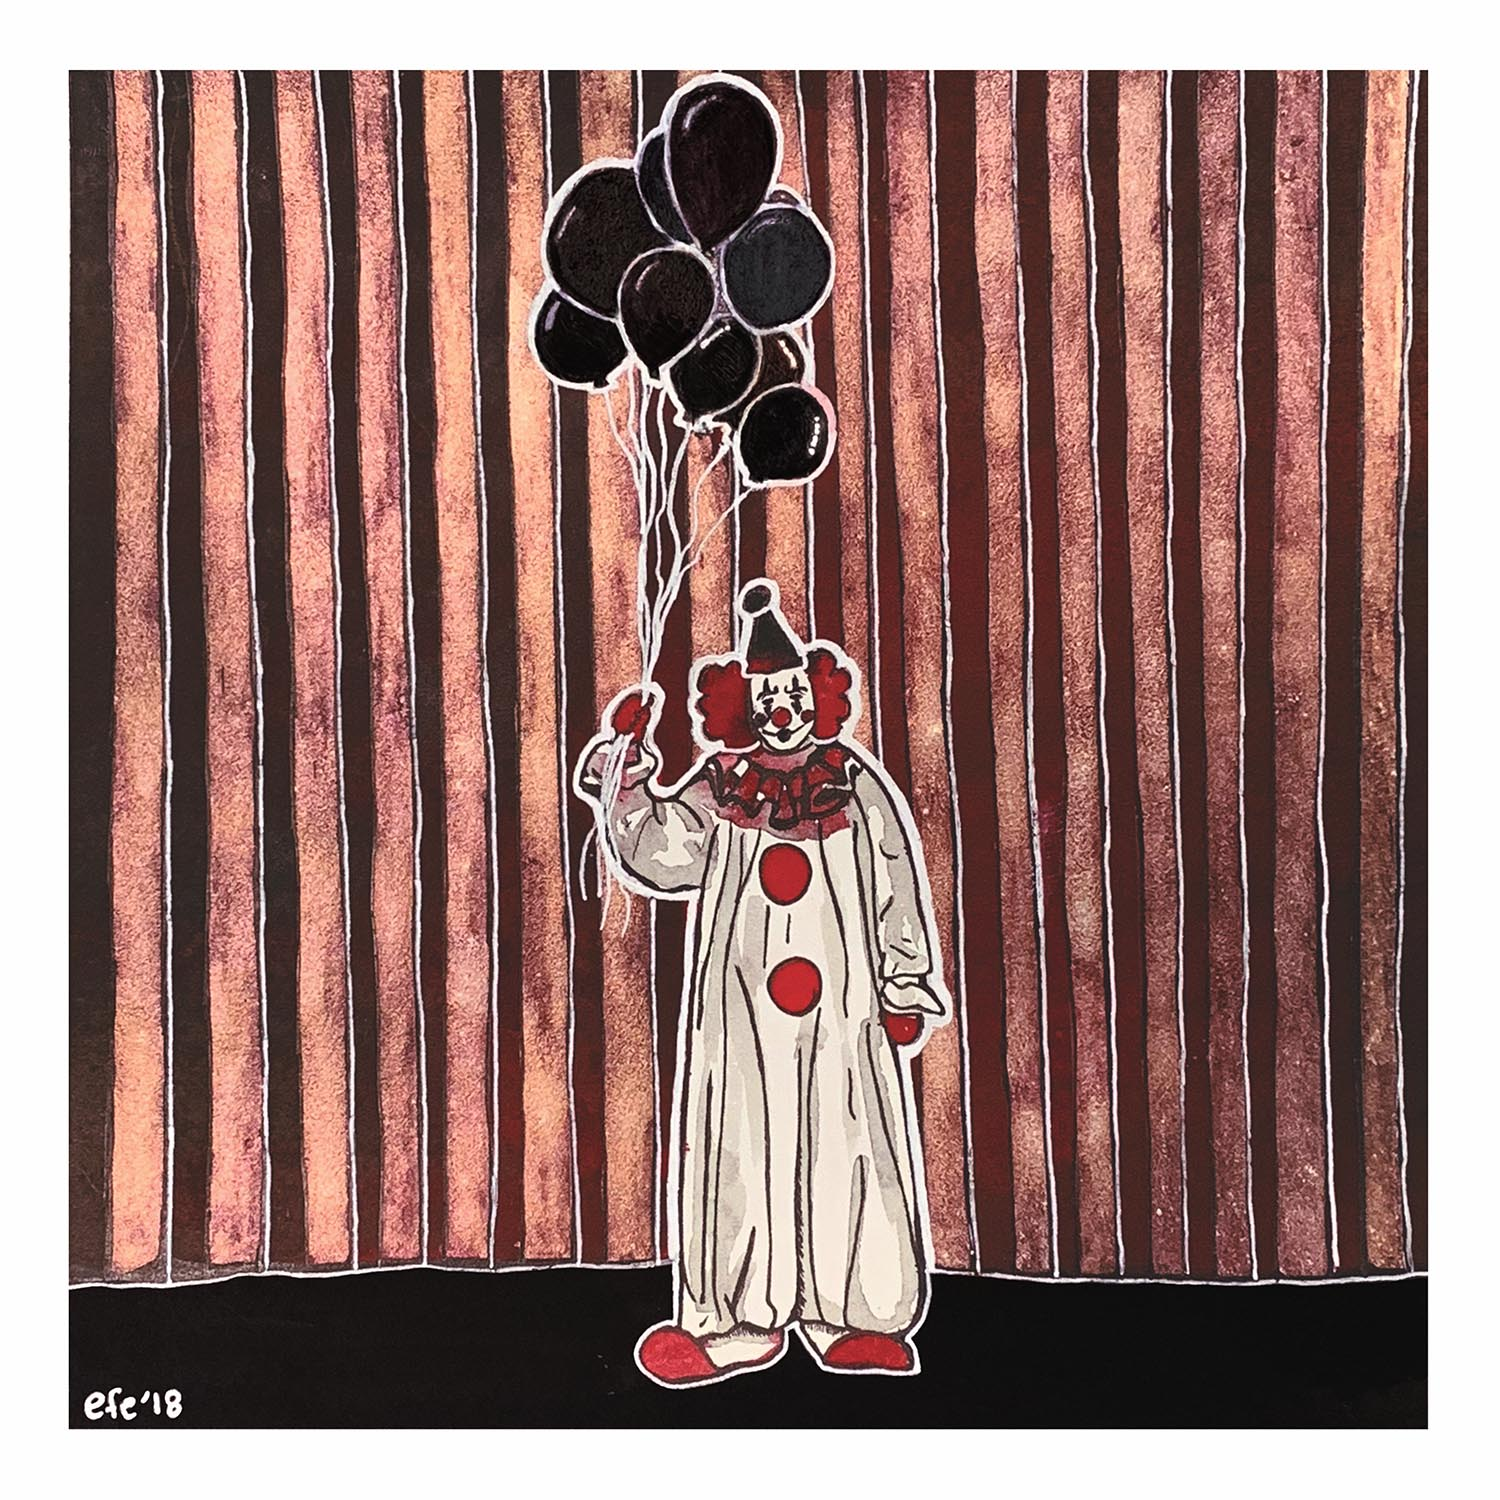 Day 18 - Coulrophobia